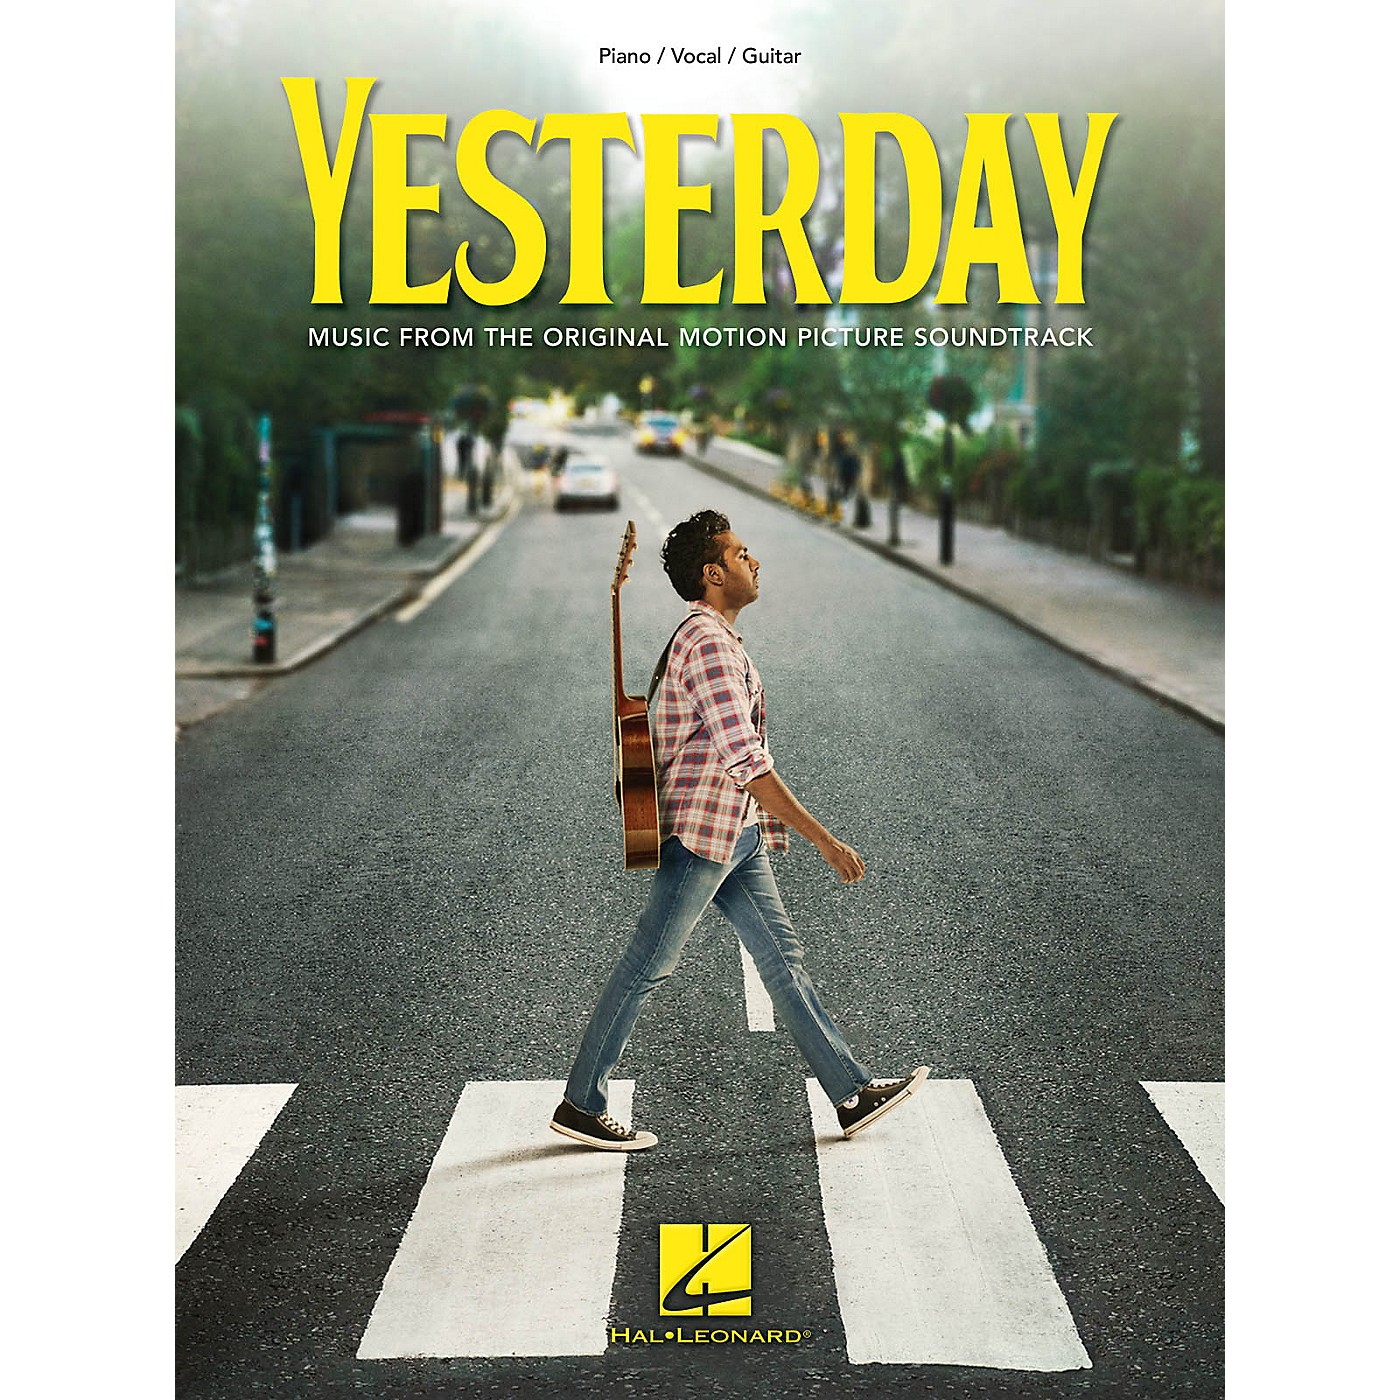 Hal Leonard Yesterday - Music from the Original Motion Picture Soundtrack Piano/Vocal/Guitar Songbook by The Beatles thumbnail